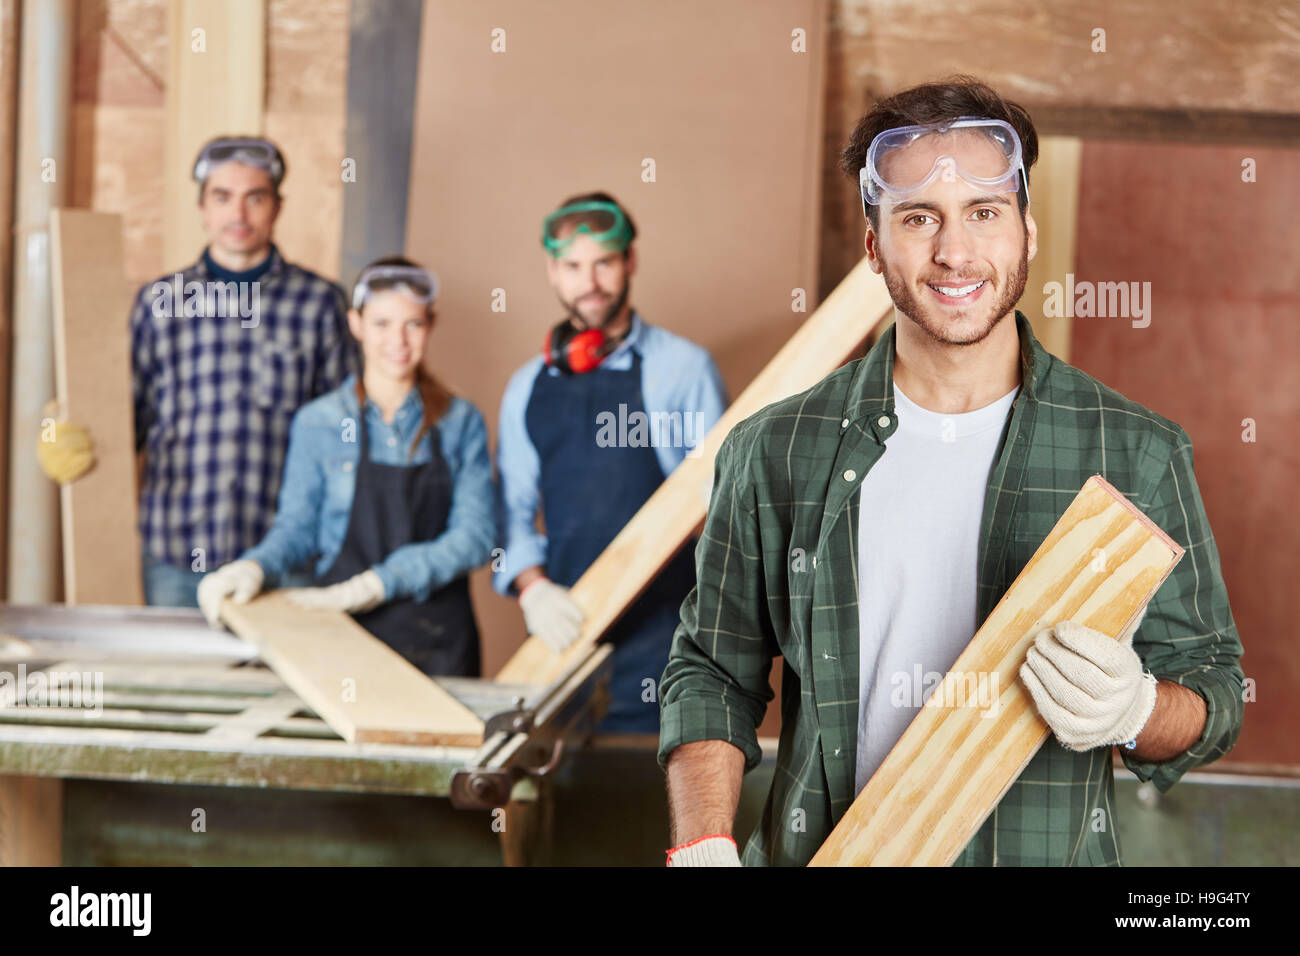 Man as carpenter with wood on his hands - Stock Image